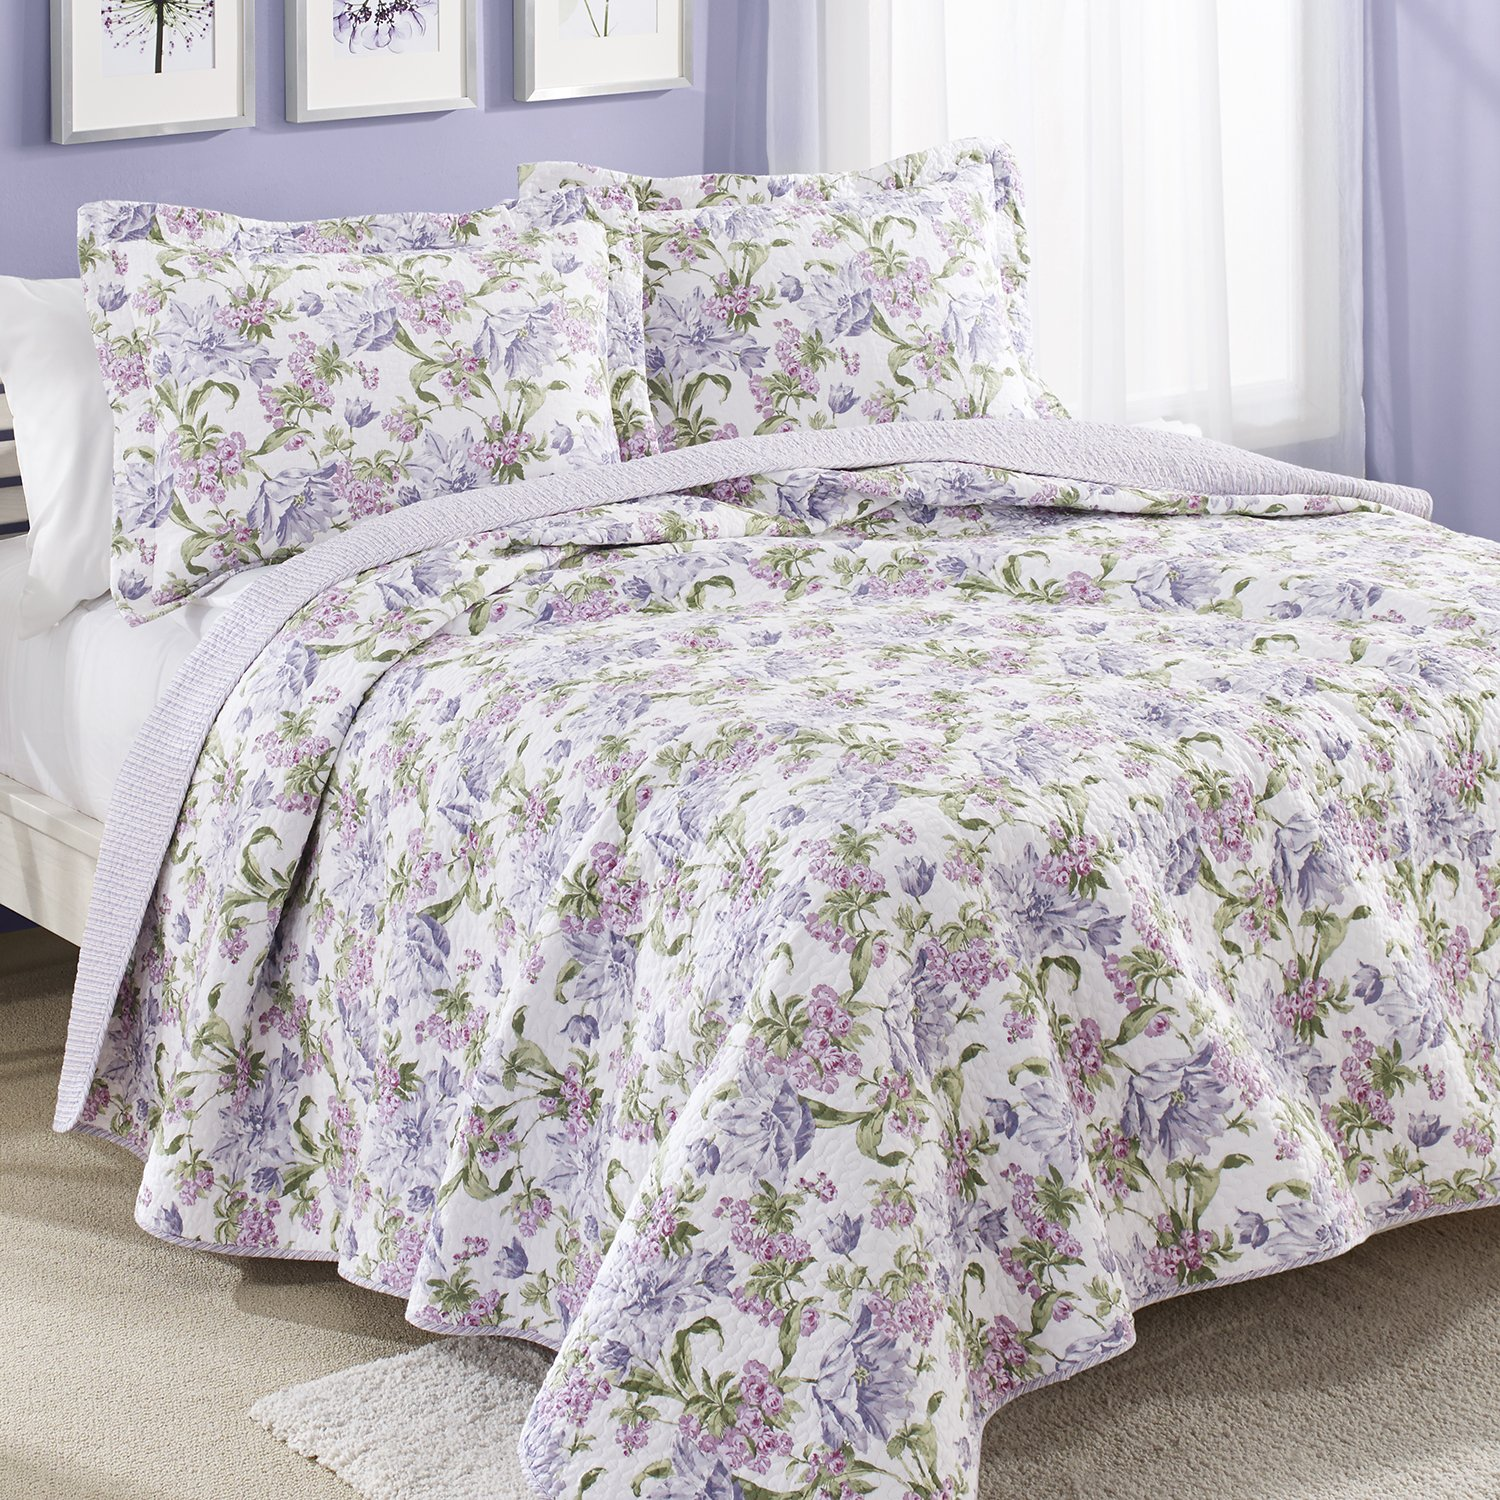 Plum and green bedding - Laura Ashley Sherborne Cotton Reversible Quilt